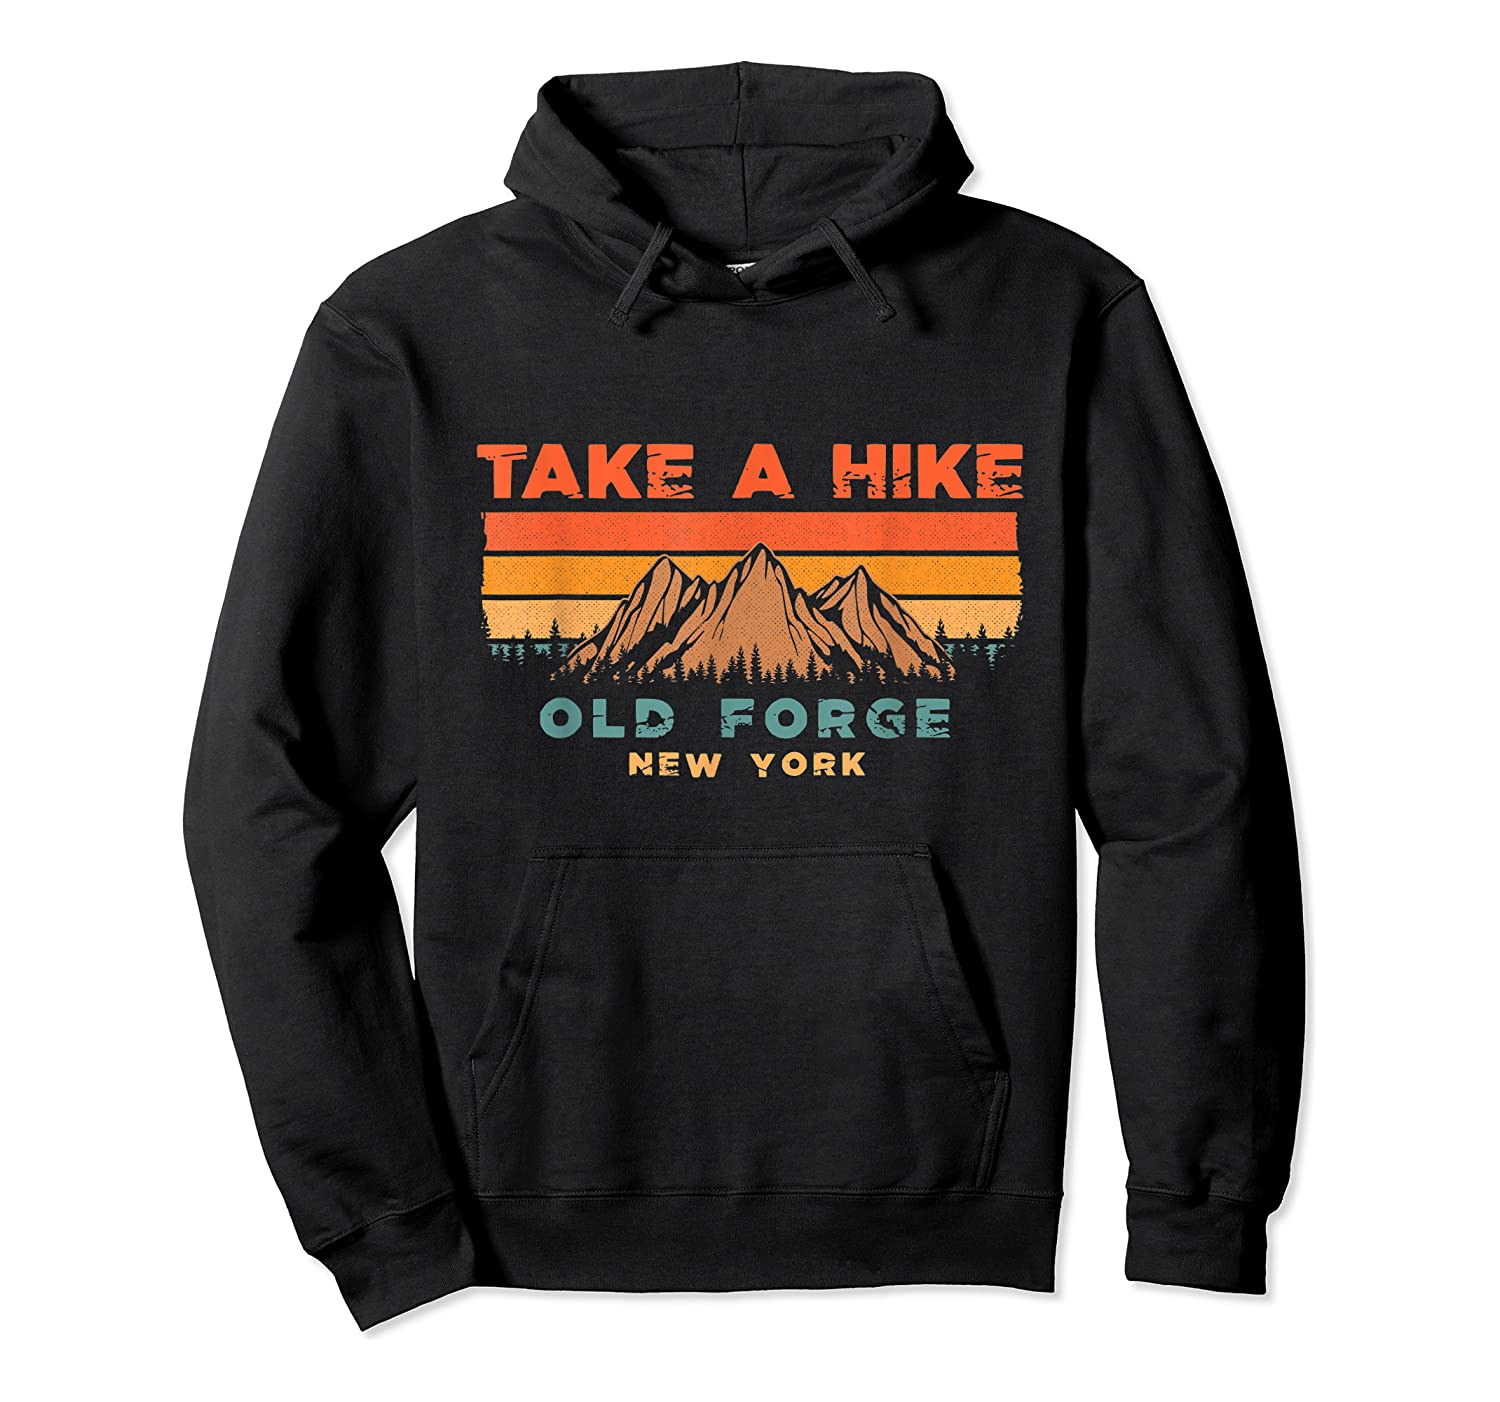 New York Vintage Take A Hike Old Forge Moutain T-shirt Unisex Pullover Hoodie